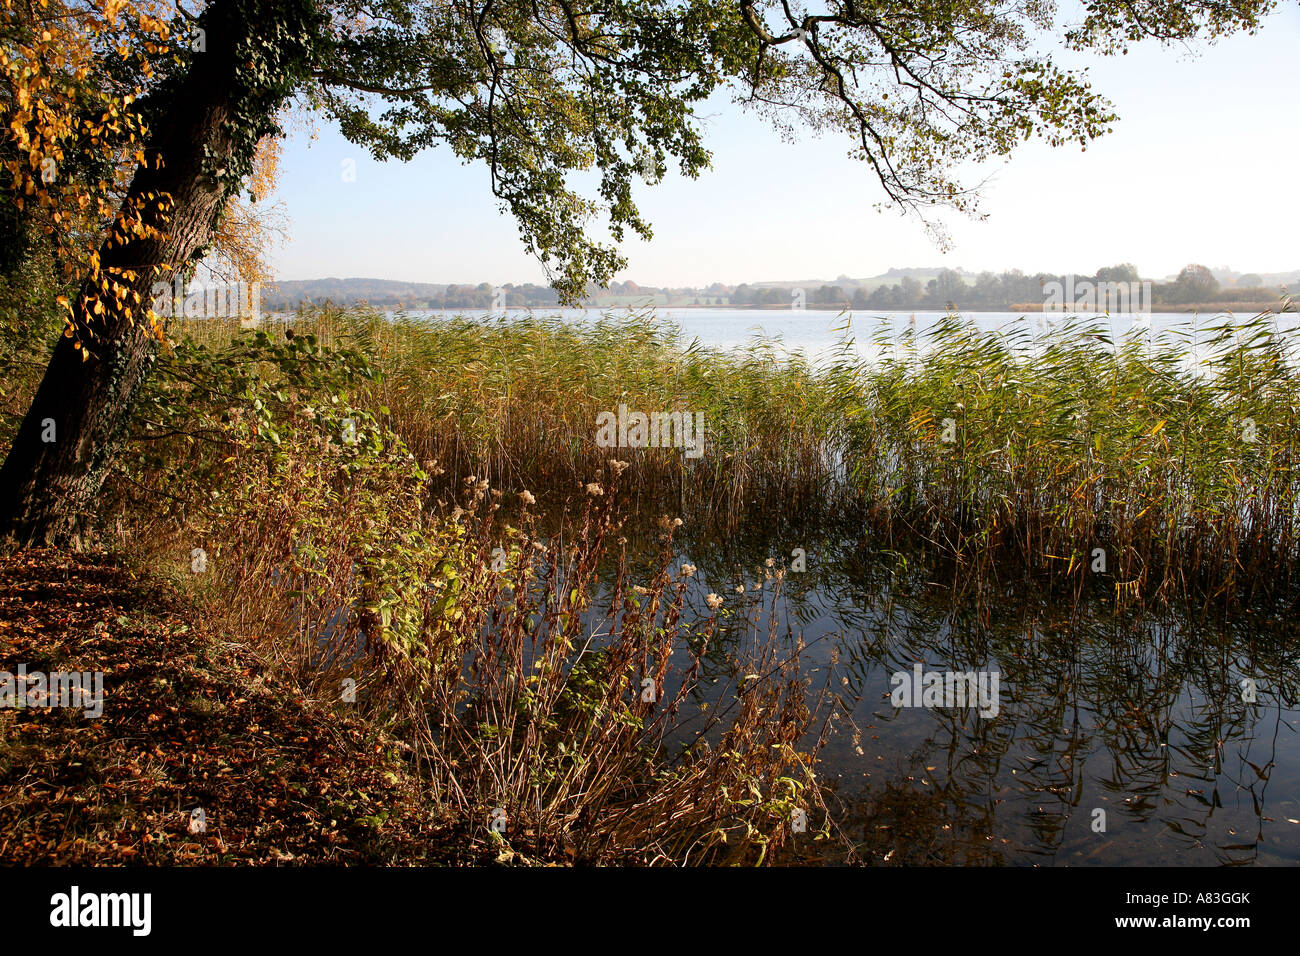 The Segeberger lake in Schleswig-Holstein the nothernmost federal state of Germany - Stock Image